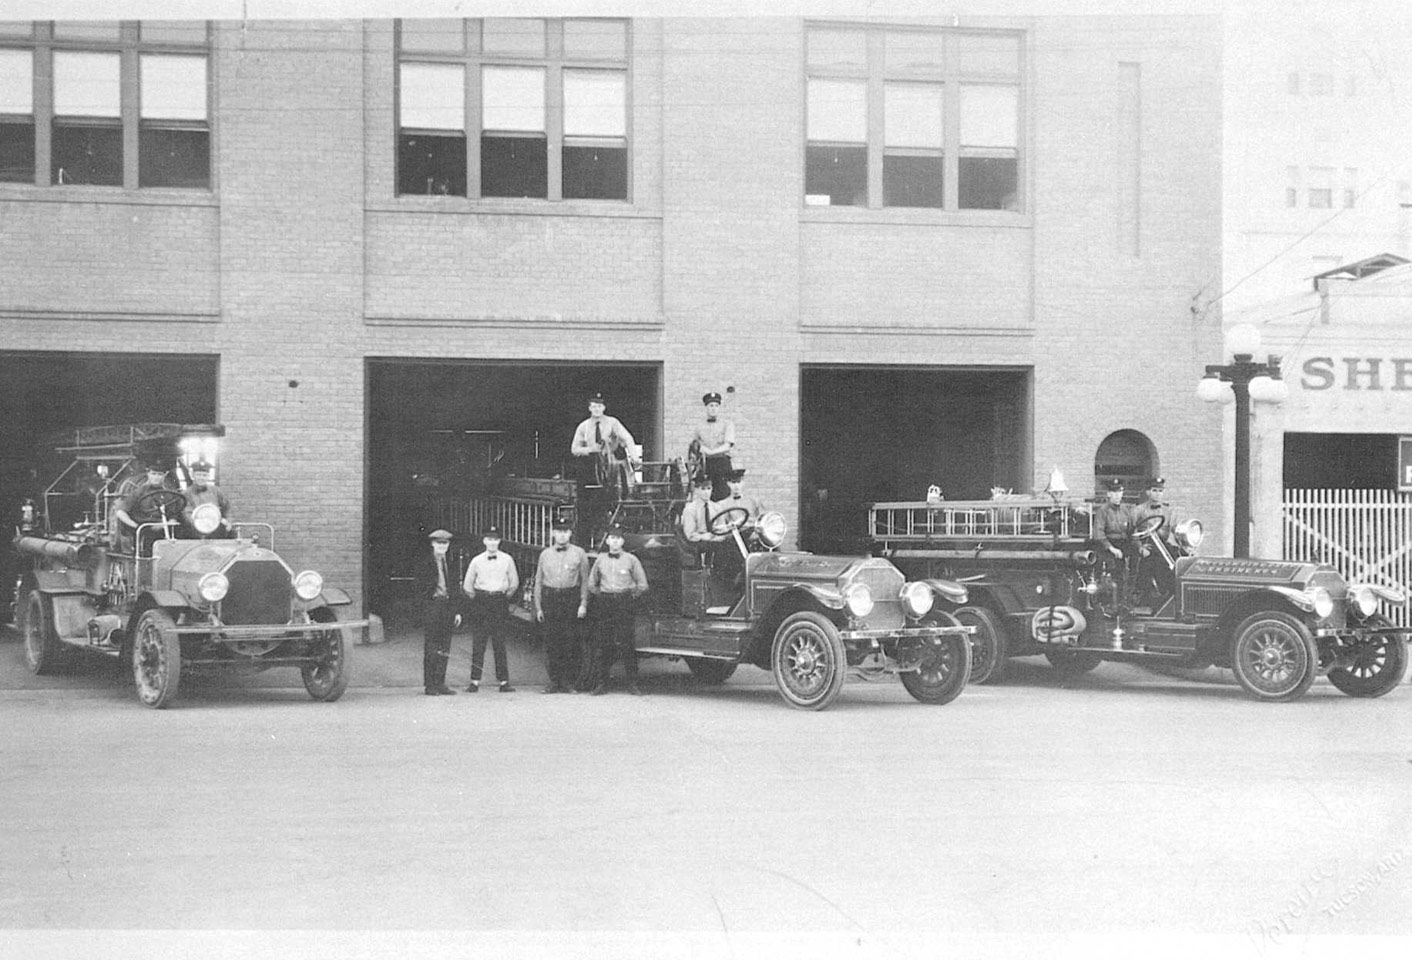 Photo of 1930's Fire Station and Fire Trucks